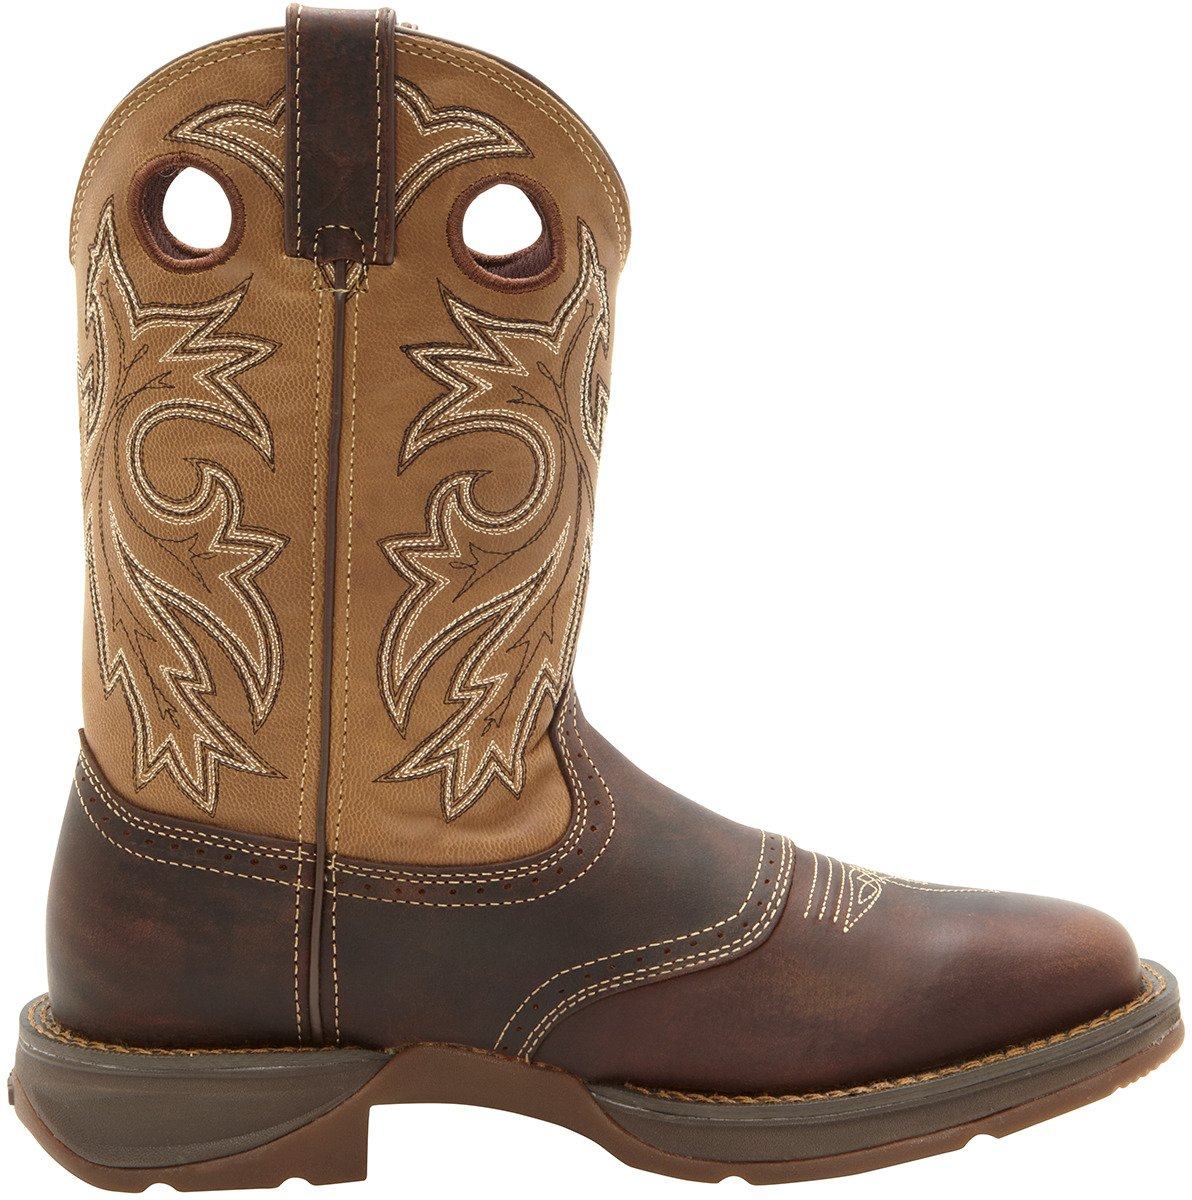 d30dadb7943 Durango Men's Rebel Pull-On Western-Style Work Boots